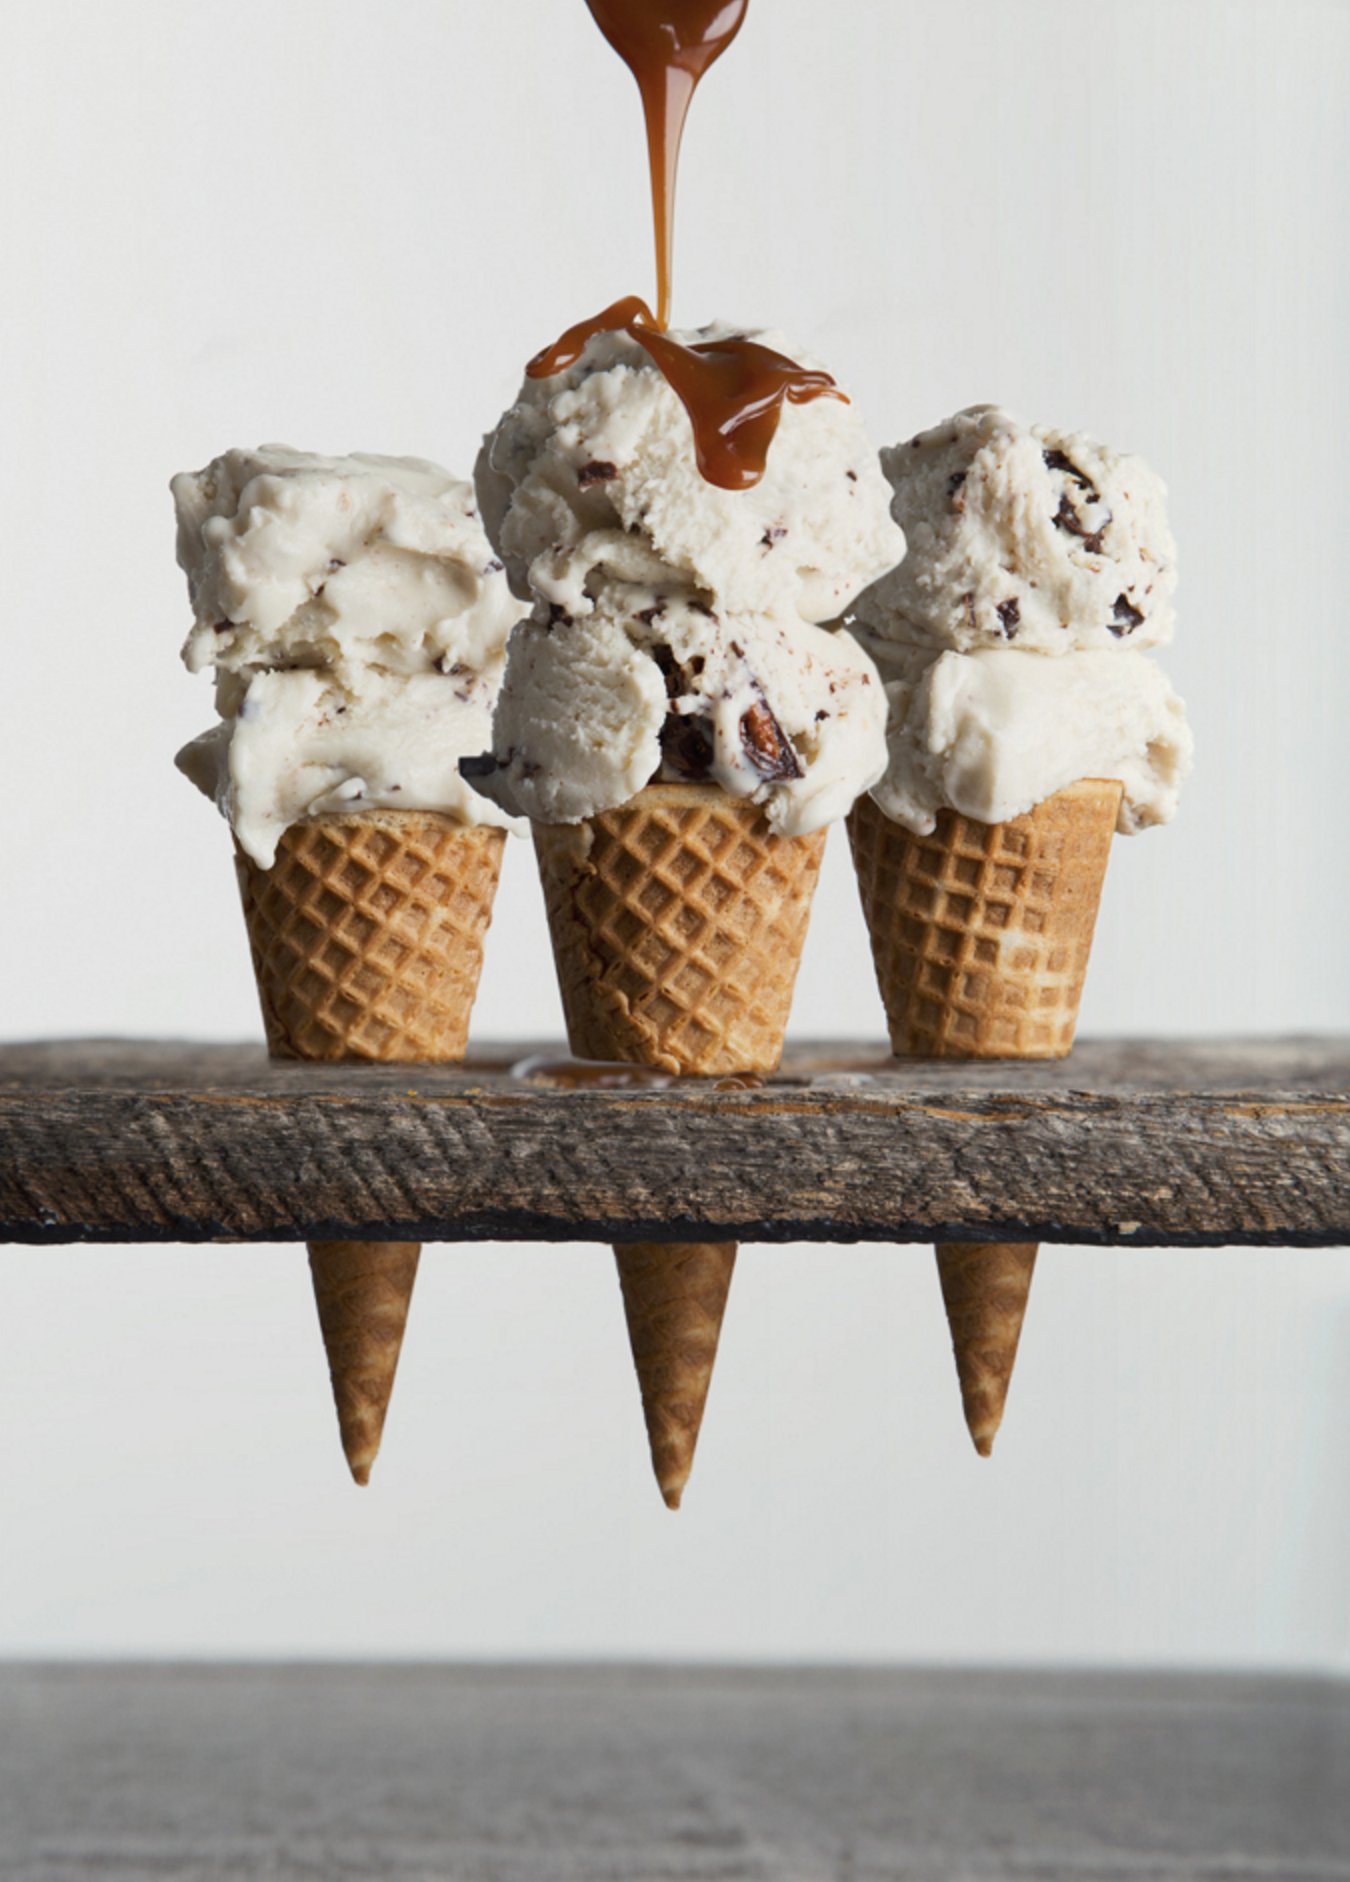 10 favorite vegan Ice creams for summer